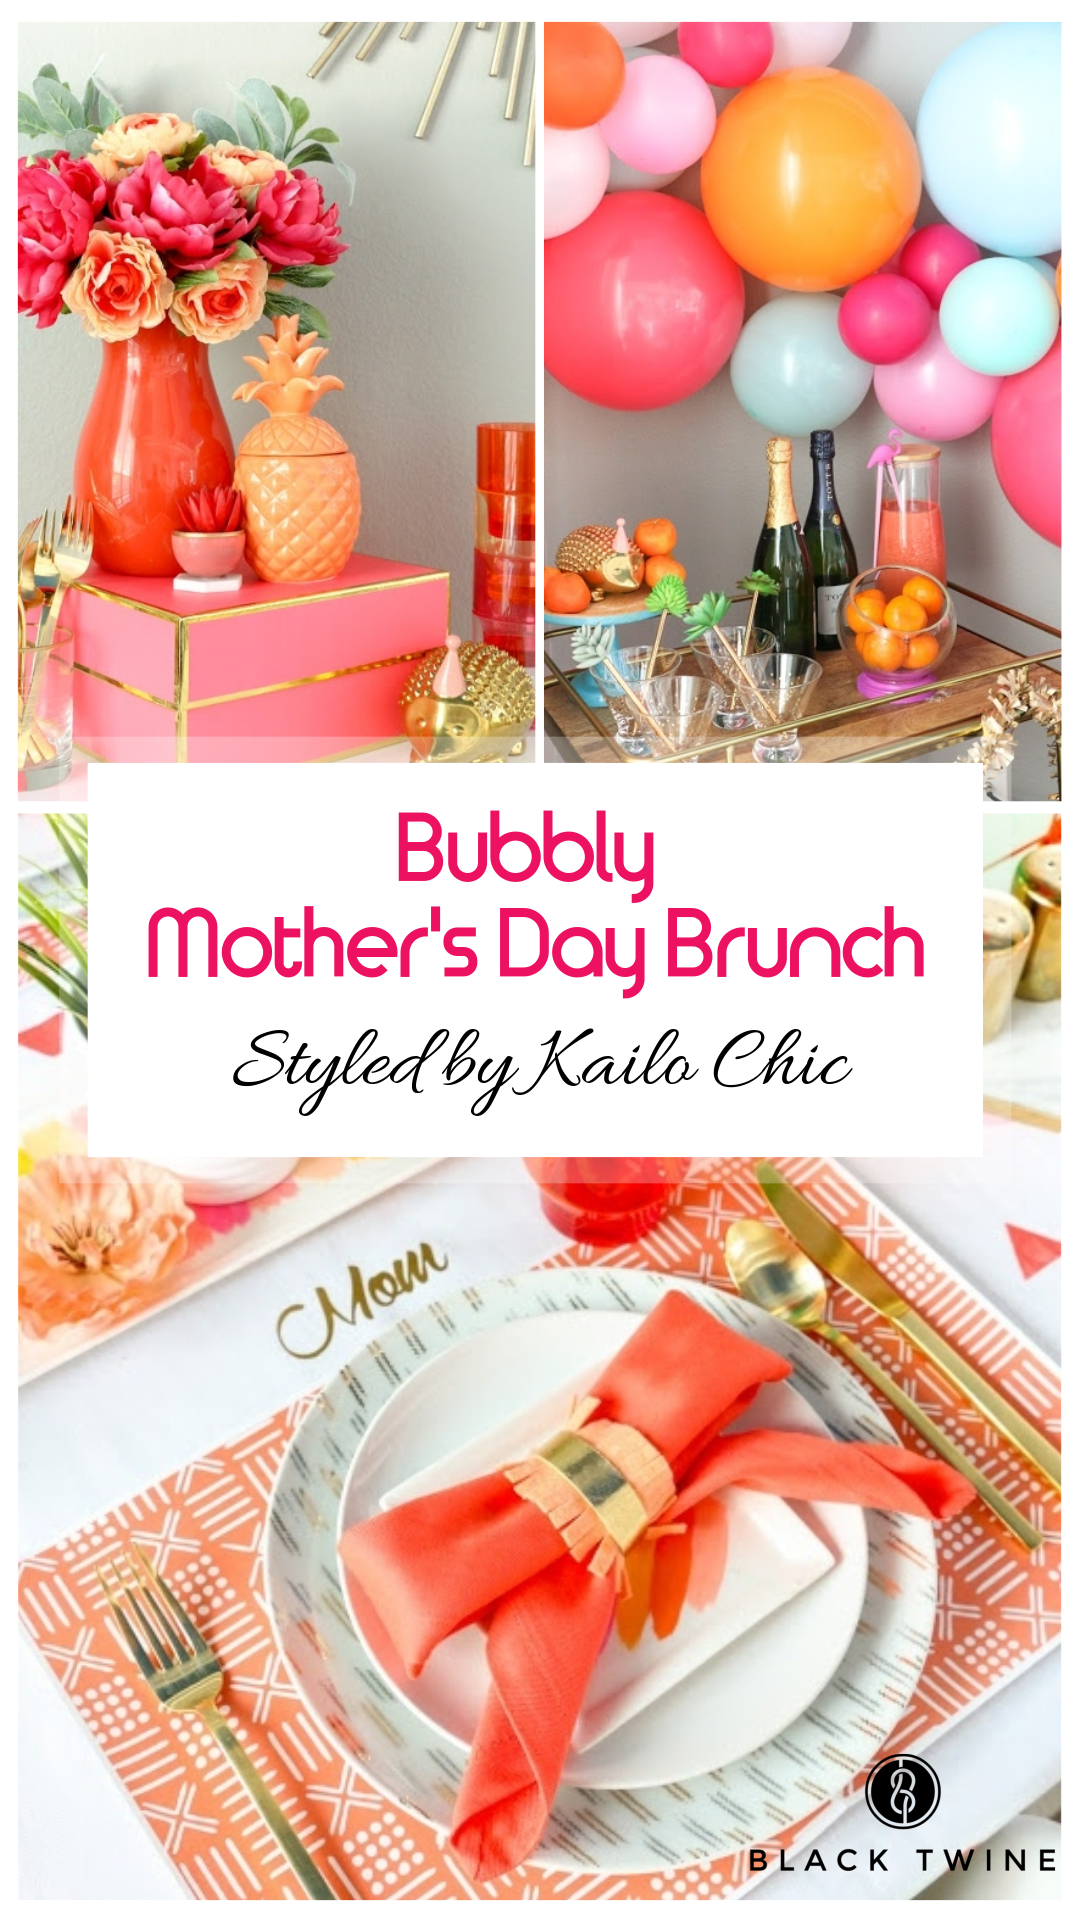 How to Host a Bubbly Mother's Day Brunch Styled by Kailo Chic | Black Twine